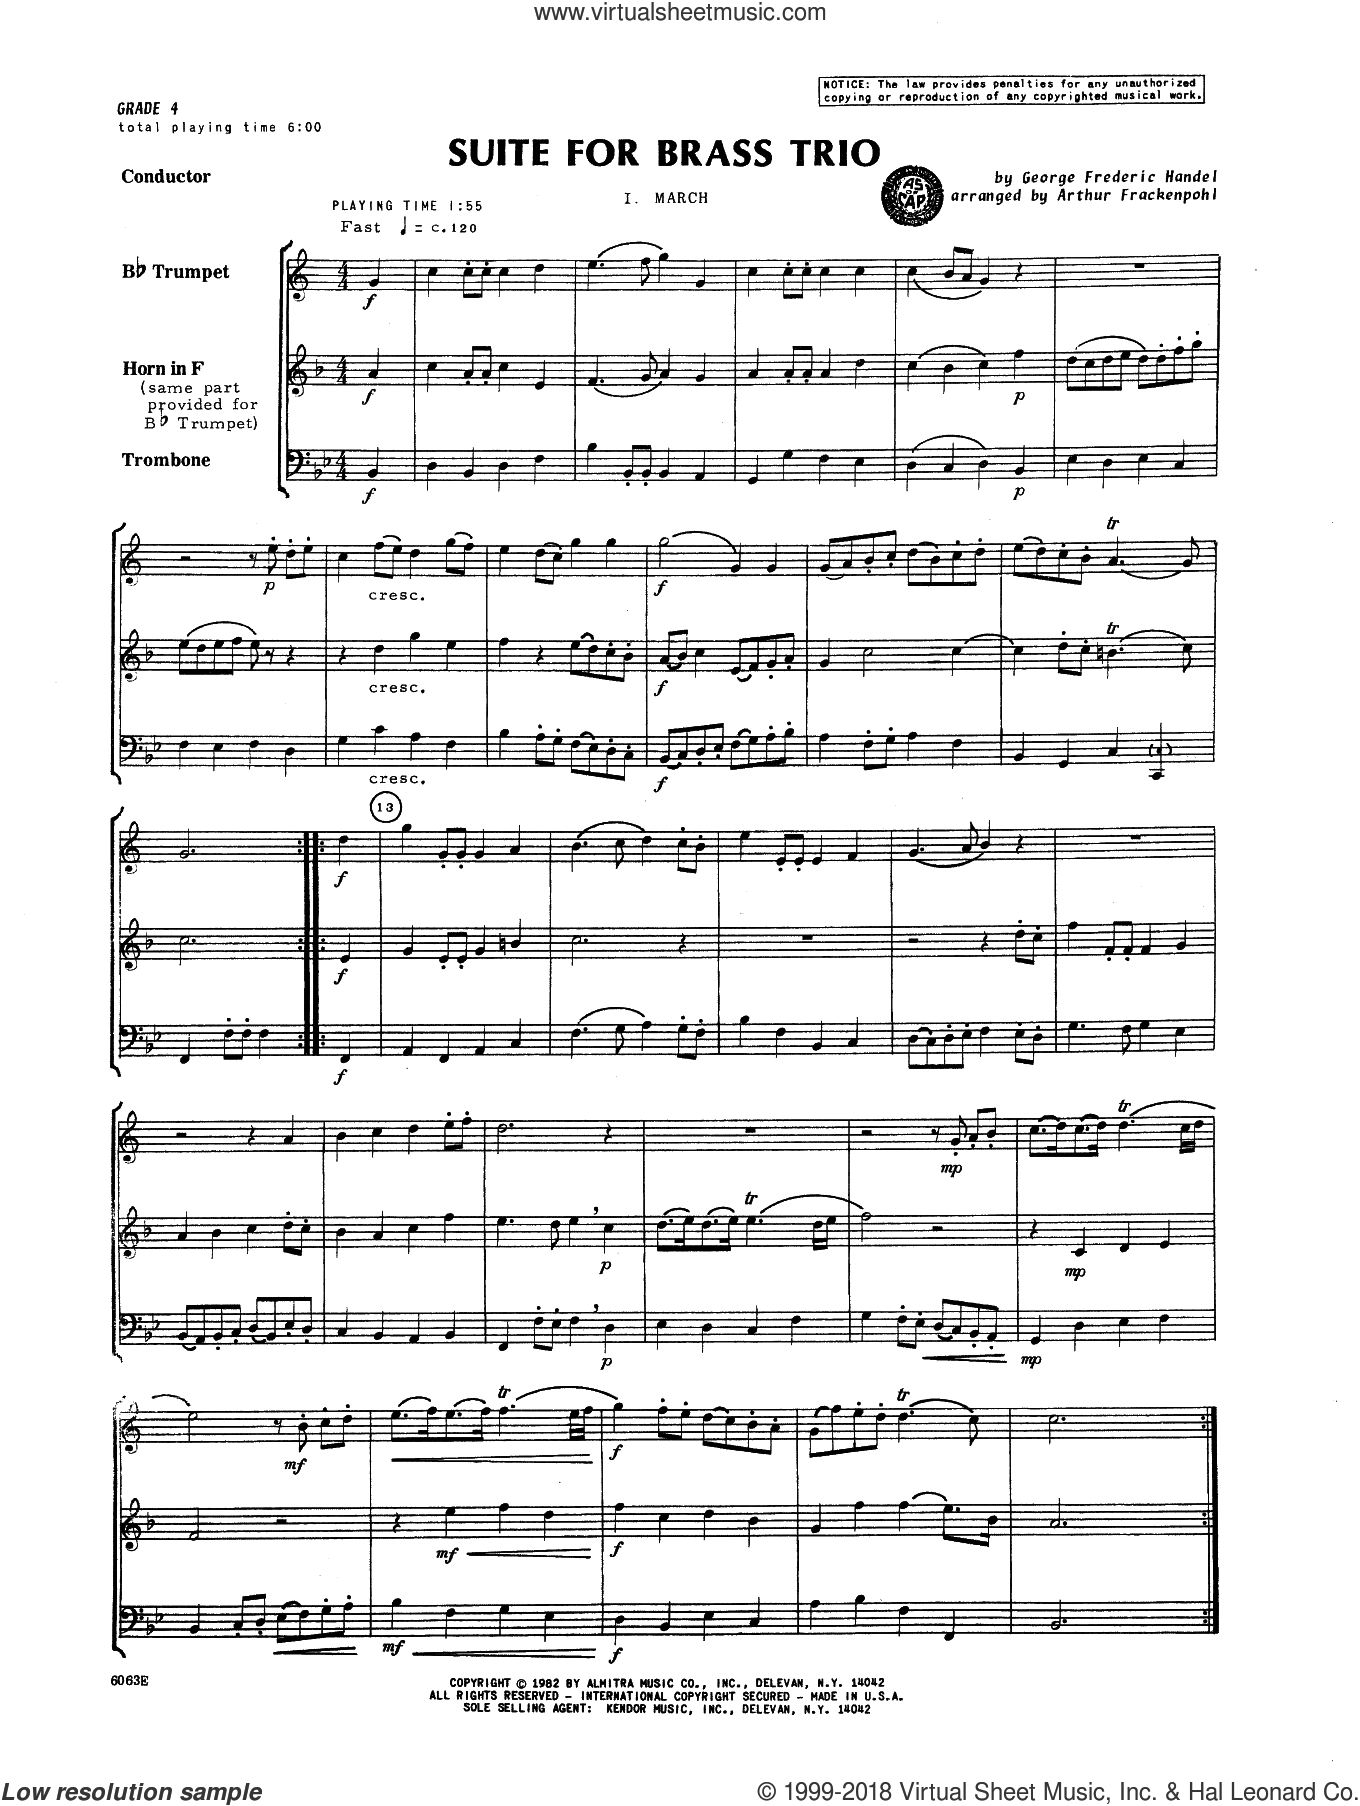 Suite For Brass Trio (COMPLETE) sheet music for brass trio by George Frideric Handel and Arthur Frackenpohl, classical score, intermediate skill level